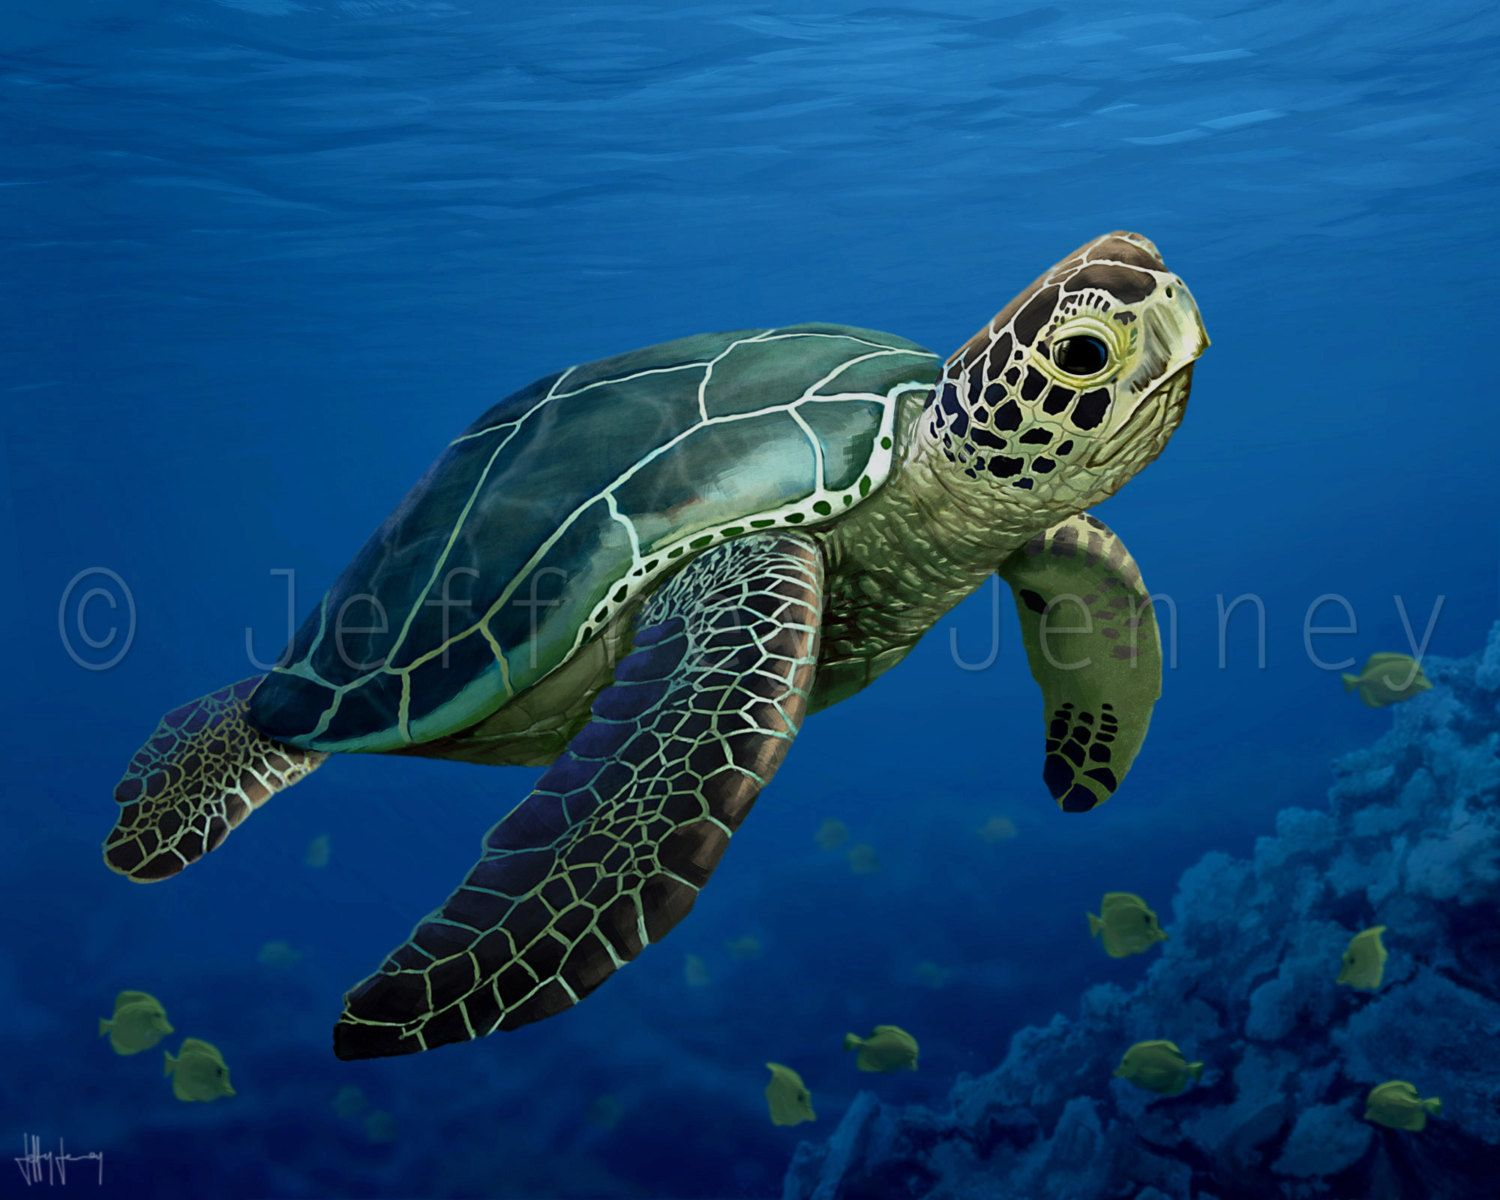 Sea Turtle Print - Fine Art Print From An Original Painting - 8x10 ...